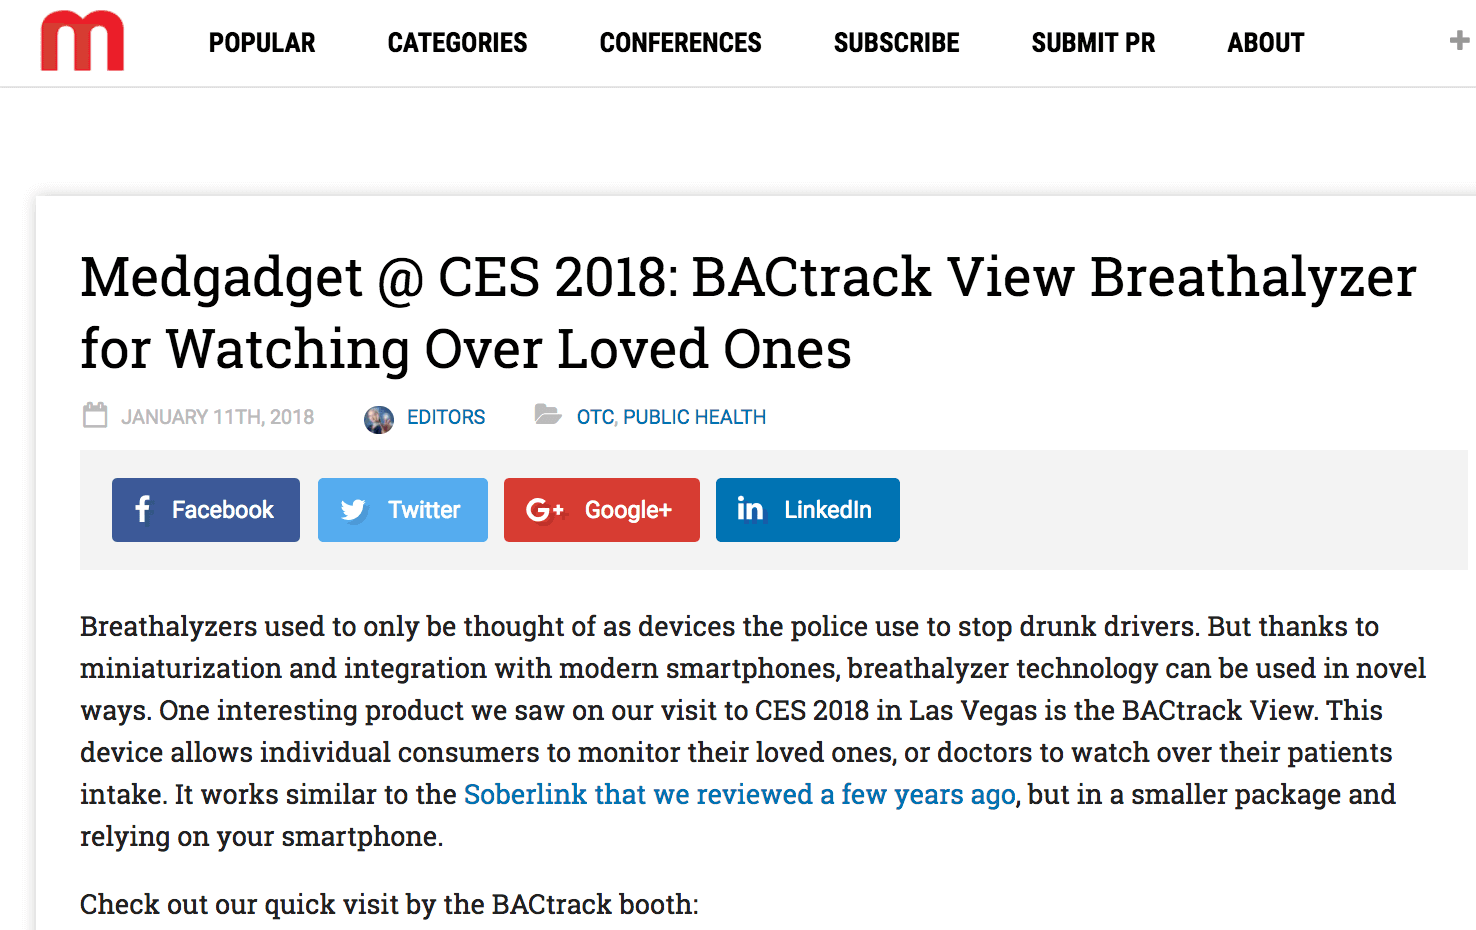 BACtrack View featured on MedGadget